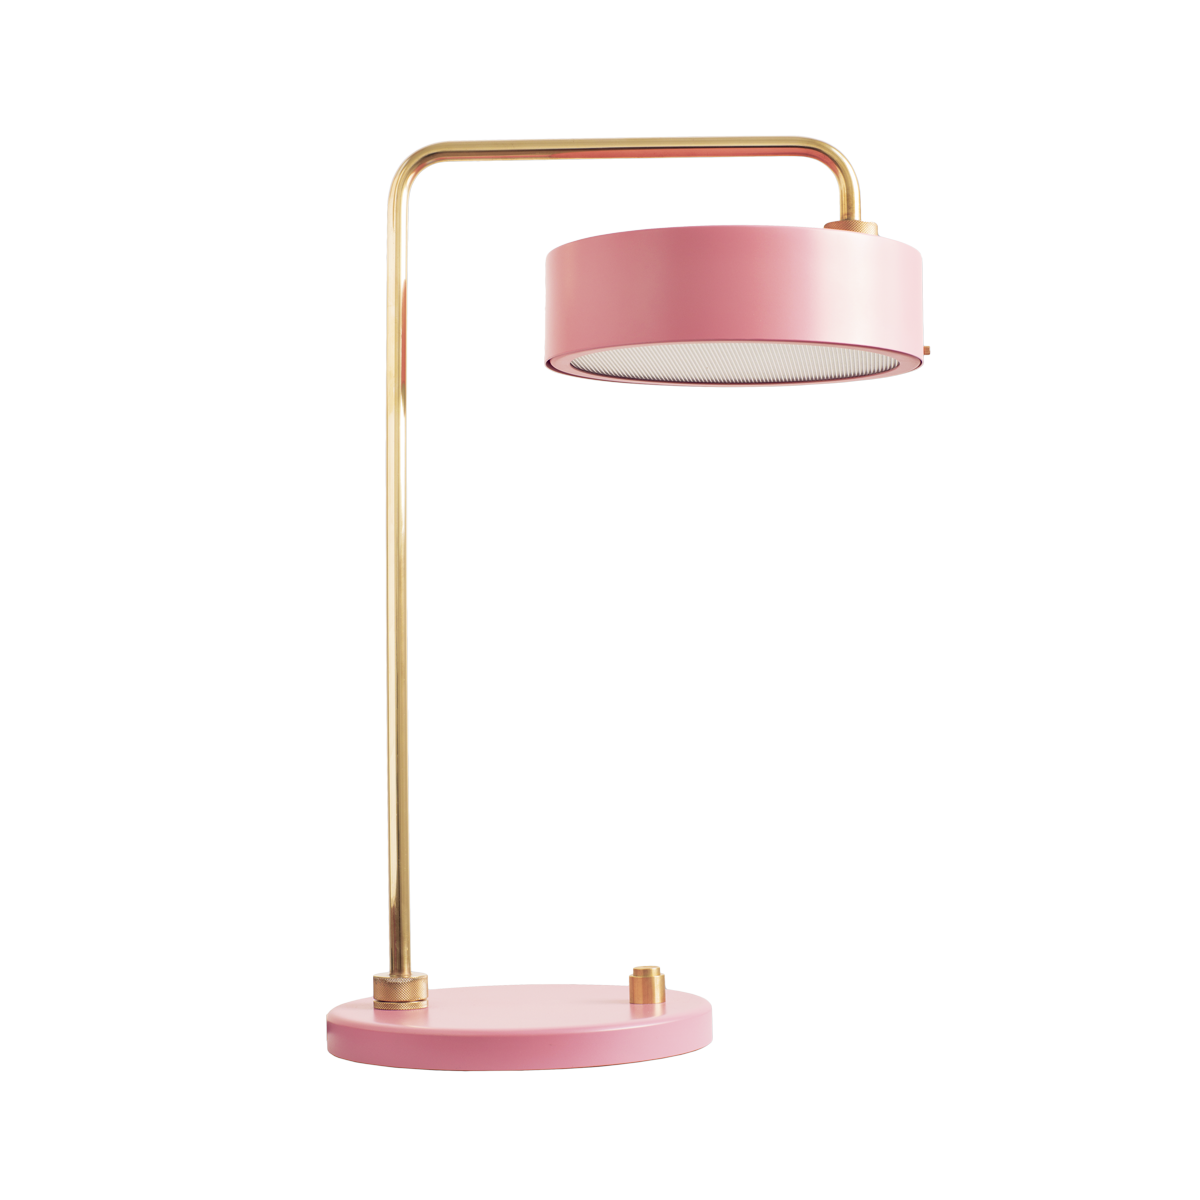 Lampe A Poser Petite Machine Rose In 2019 Highly Relatable